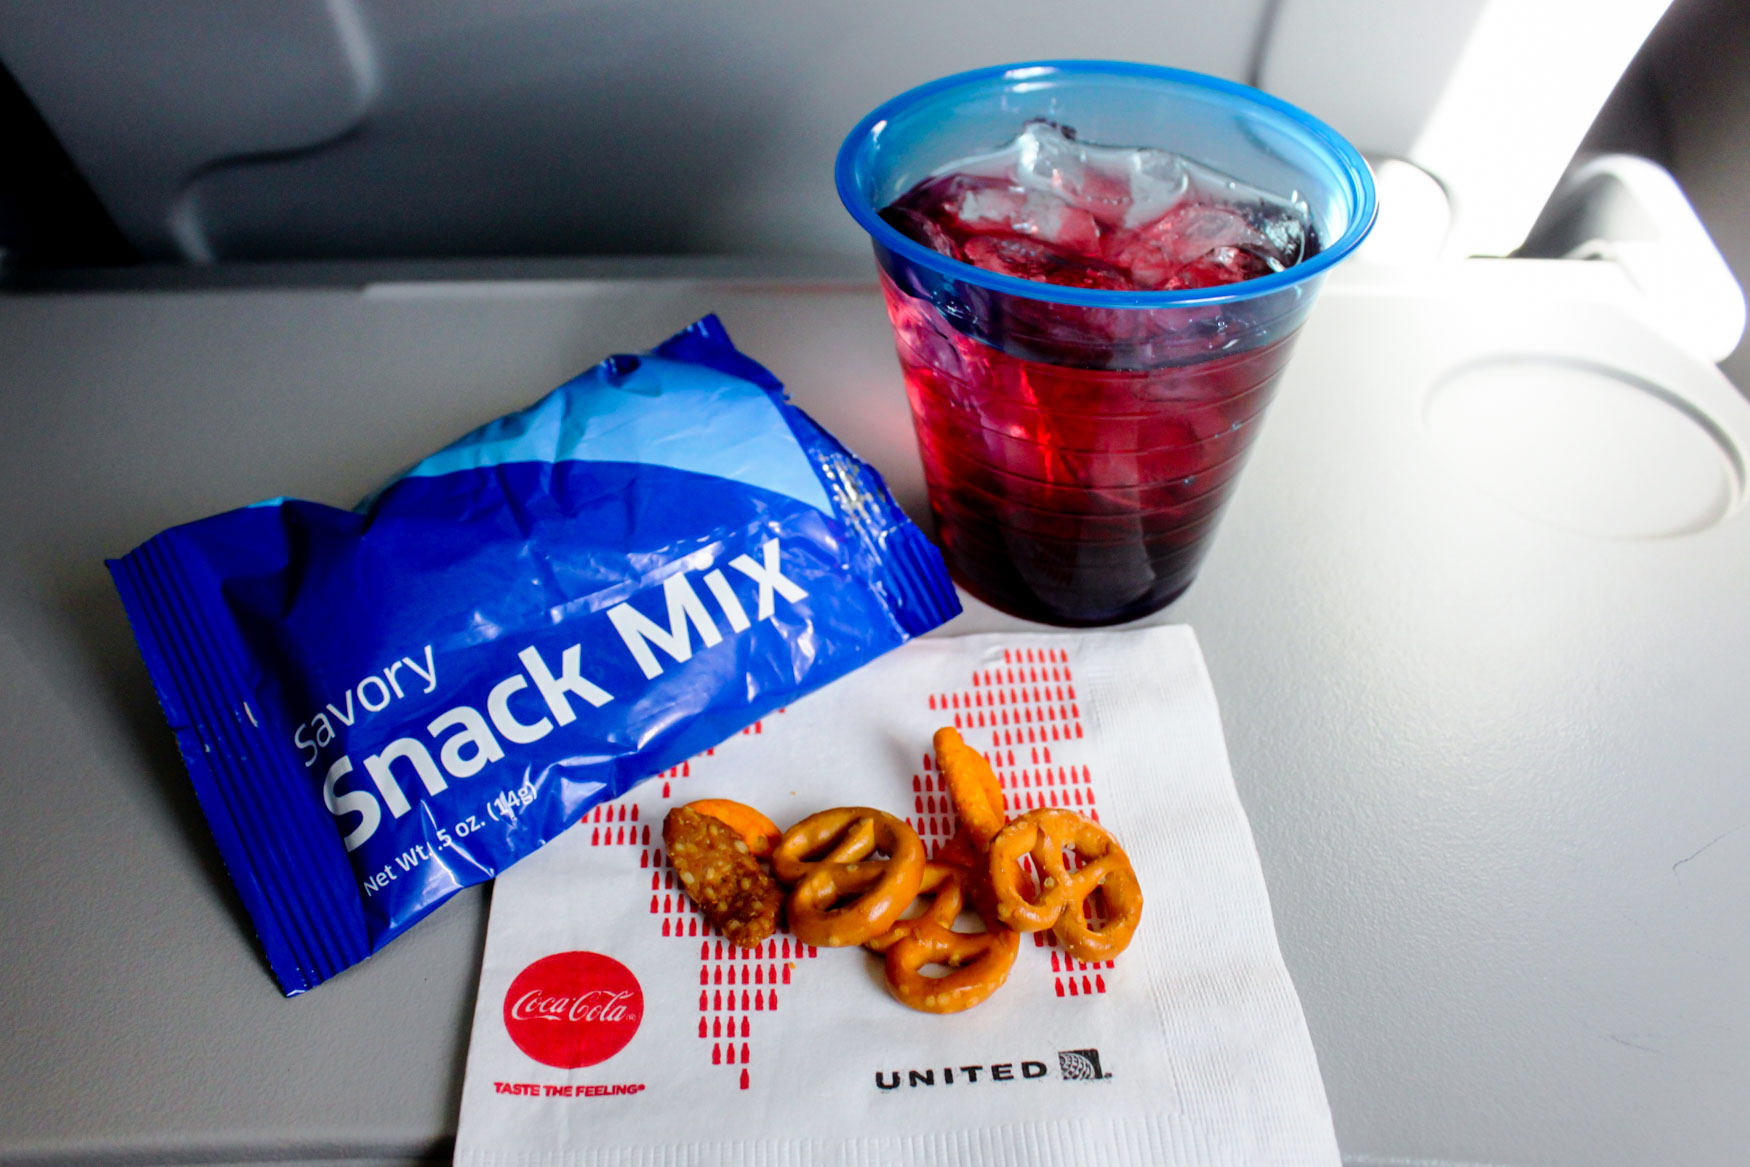 United Express Snack Mix